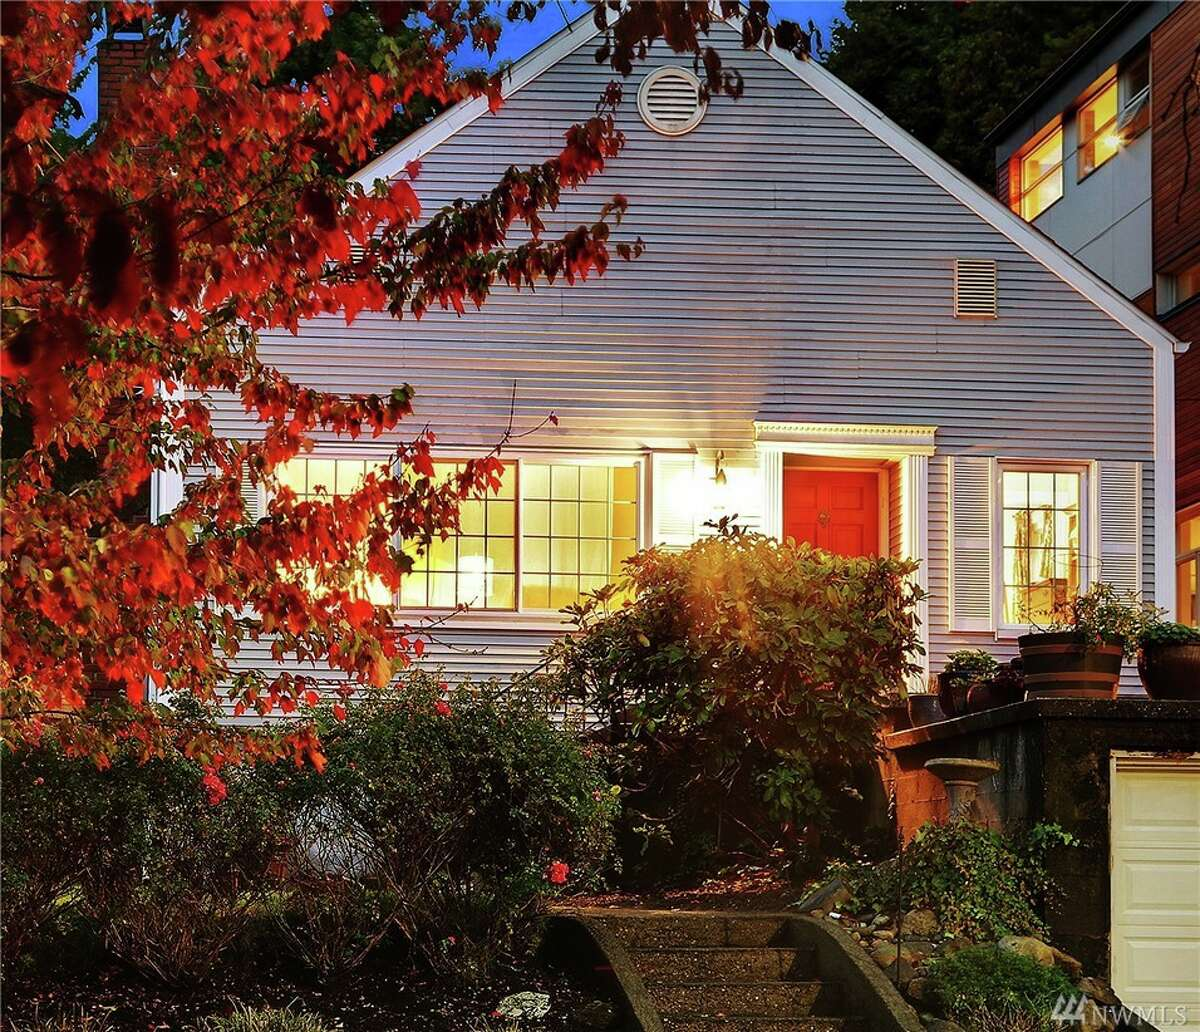 The first home,3723 Meridian Ave. N., is listed for $599,950. The two bedroom, one bathroom home is a 1912 Craftsman bungalow within minutes from Gas Works Park, the University of Washington and the Burke-Gilman Trail. You can see the full listing here.